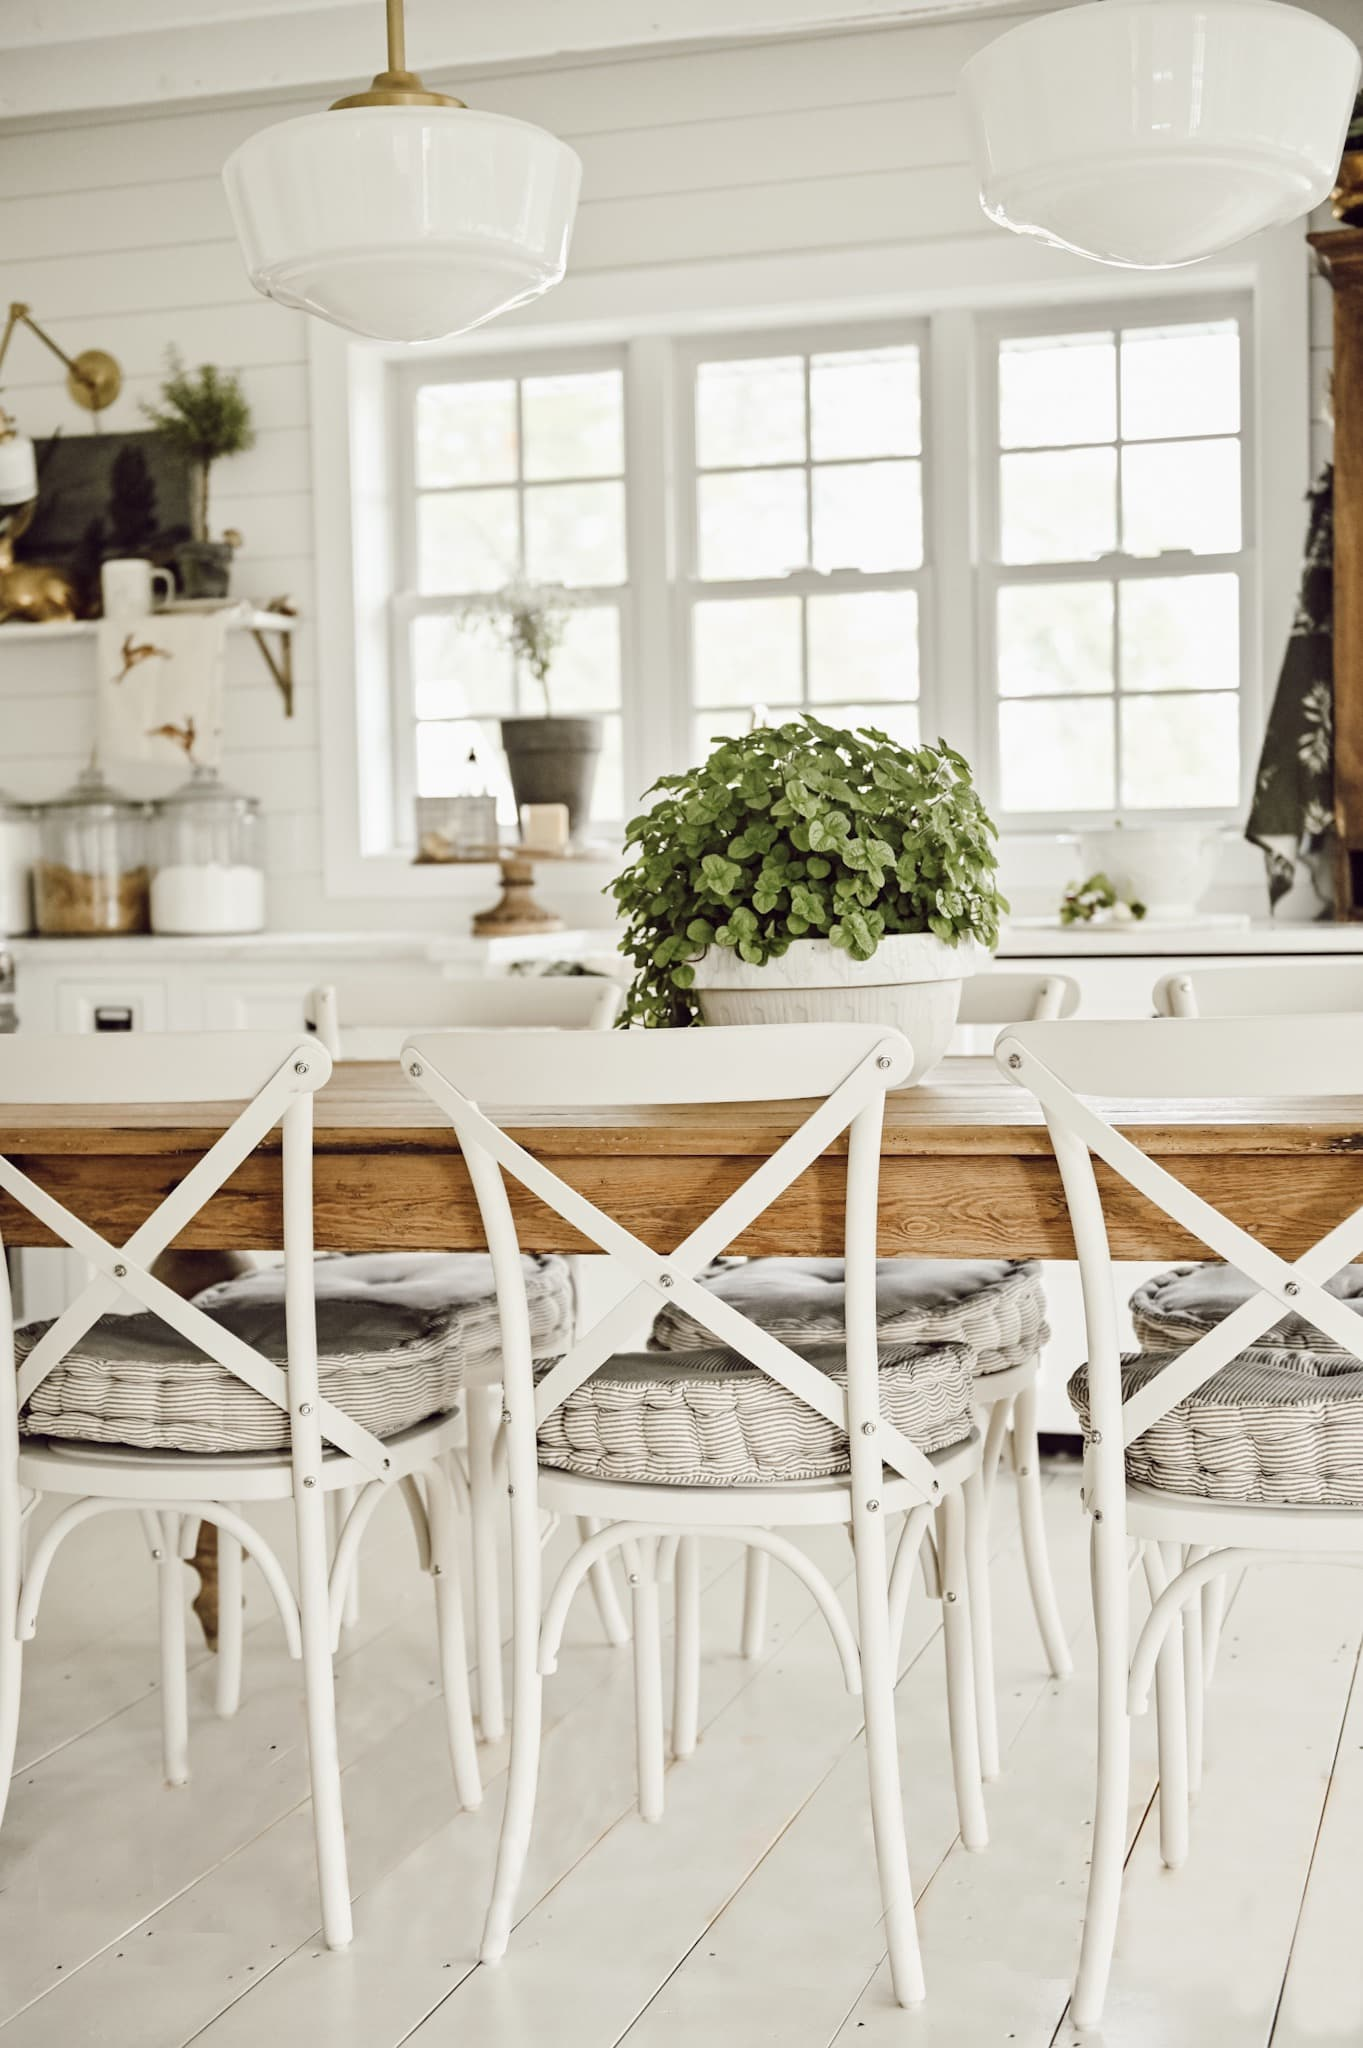 Kitchen Island doesn't have to be traditional